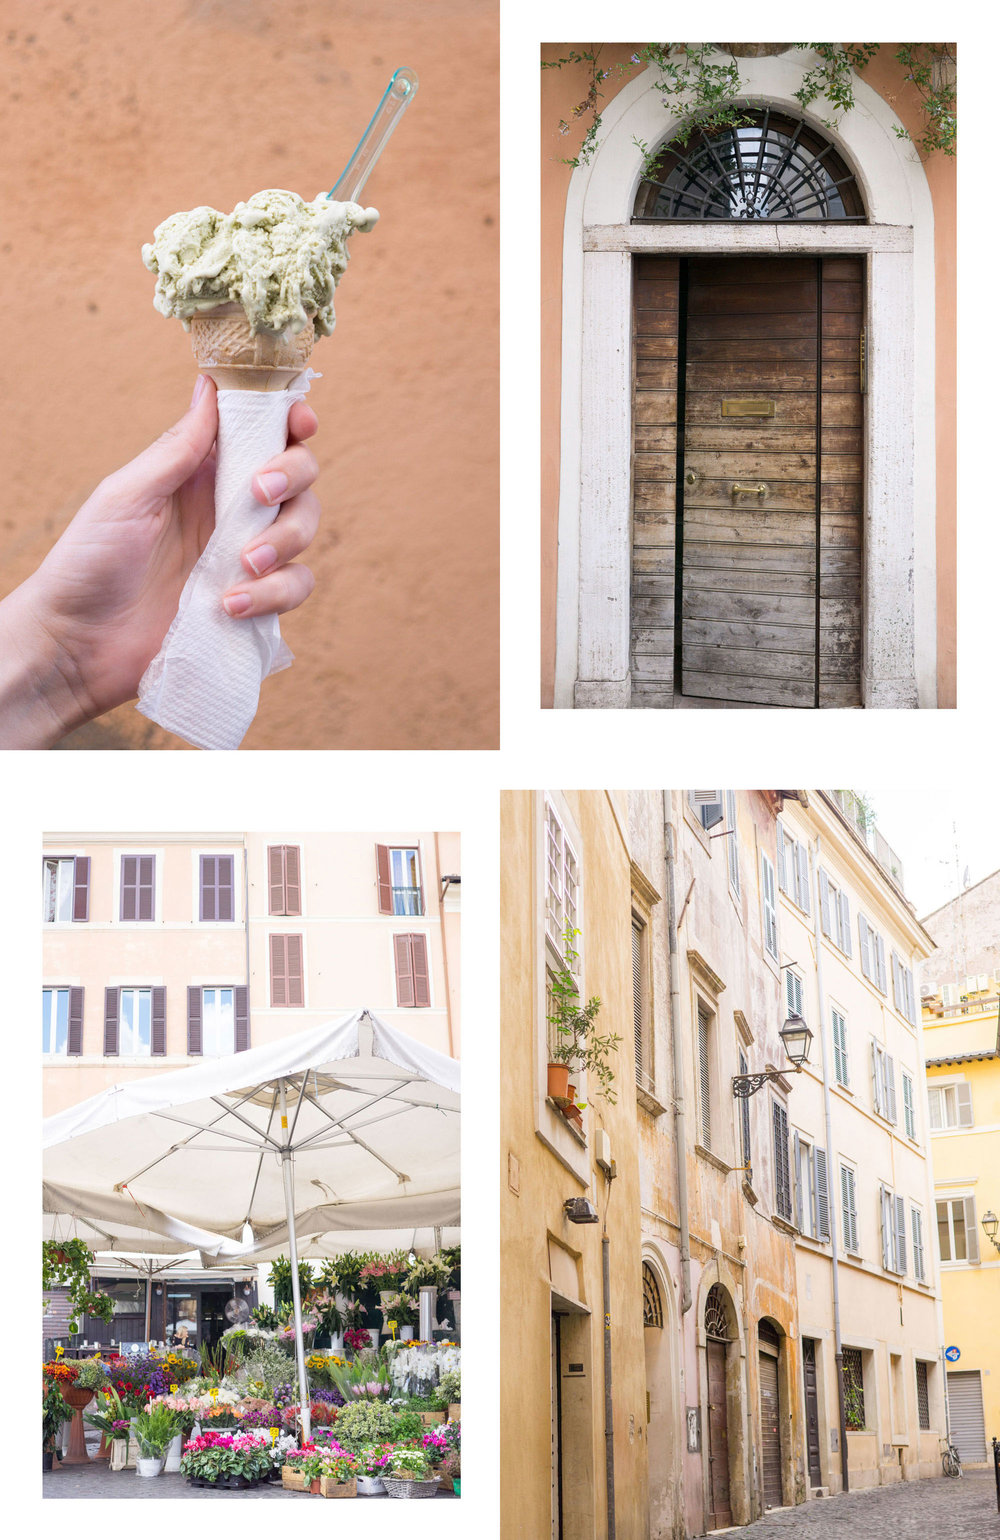 Rome Travel Guide | Experience delightful Rome with this handy travel guide filled with recommendations, tips and travel photography.